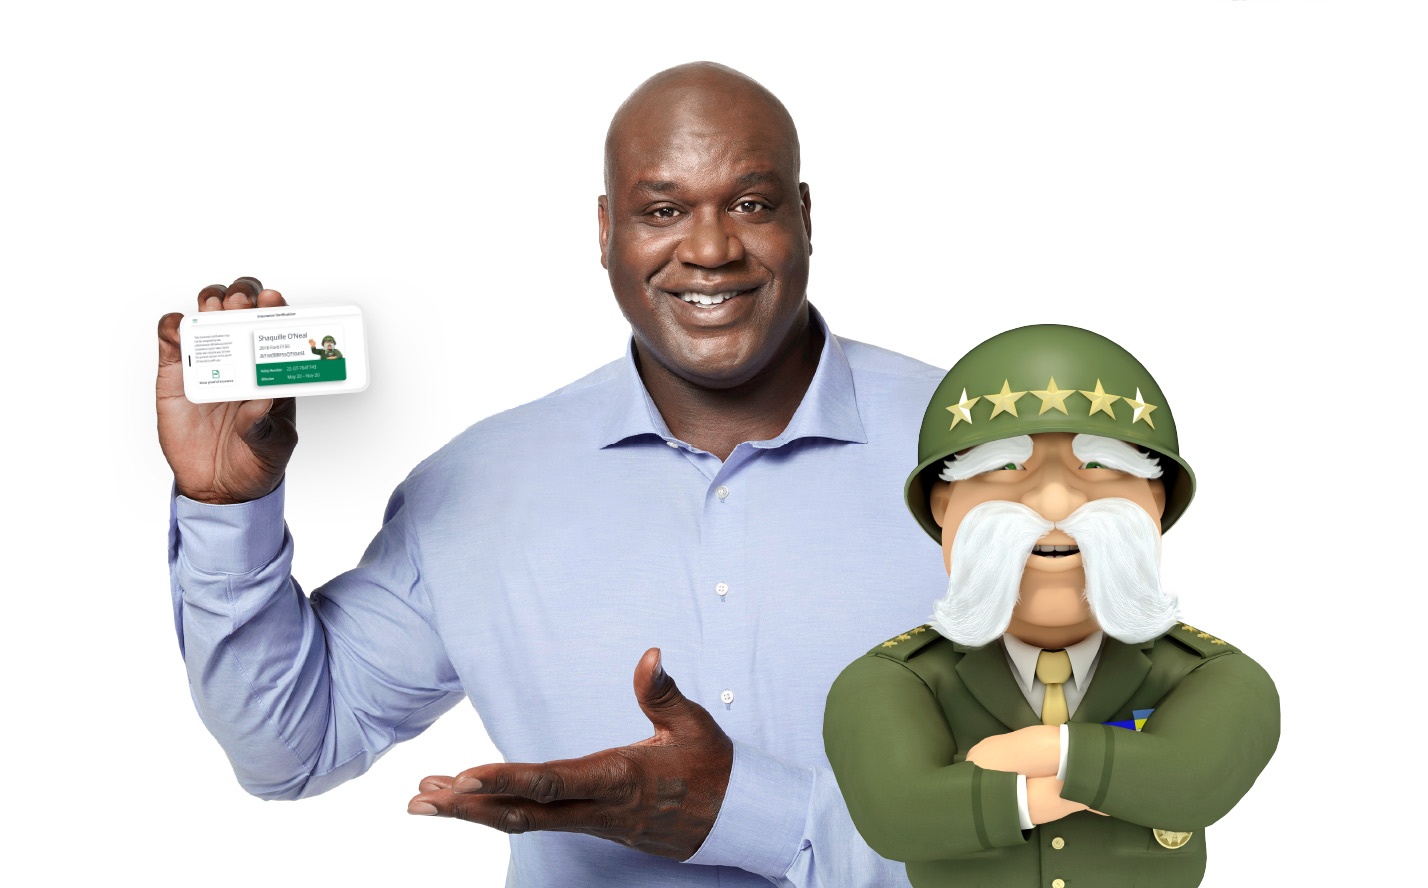 Shaq Smiling with The General and mobile app